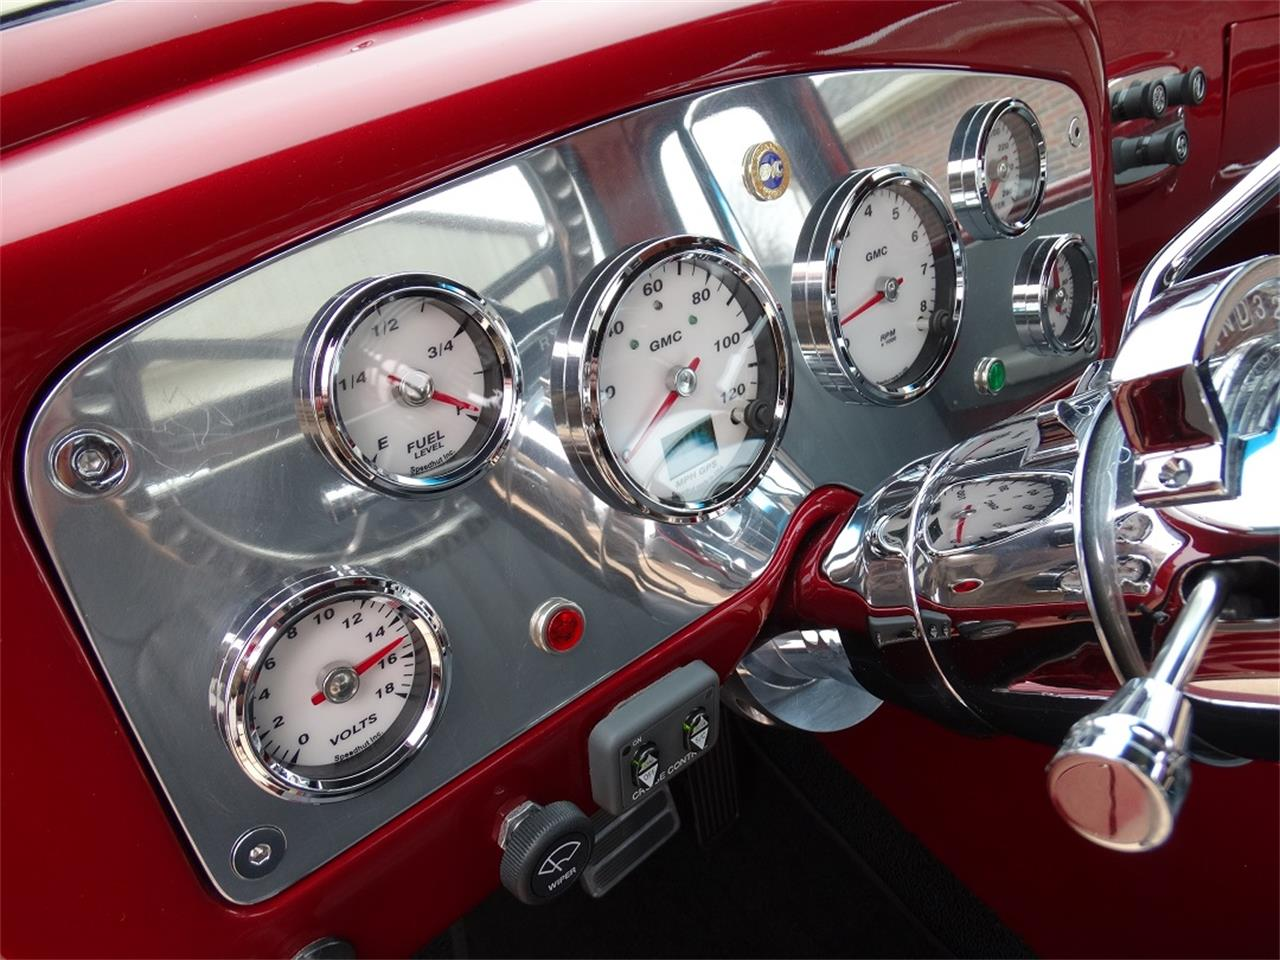 Large Picture of '54 GMC Pickup - $54,900.00 Offered by a Private Seller - N8MG